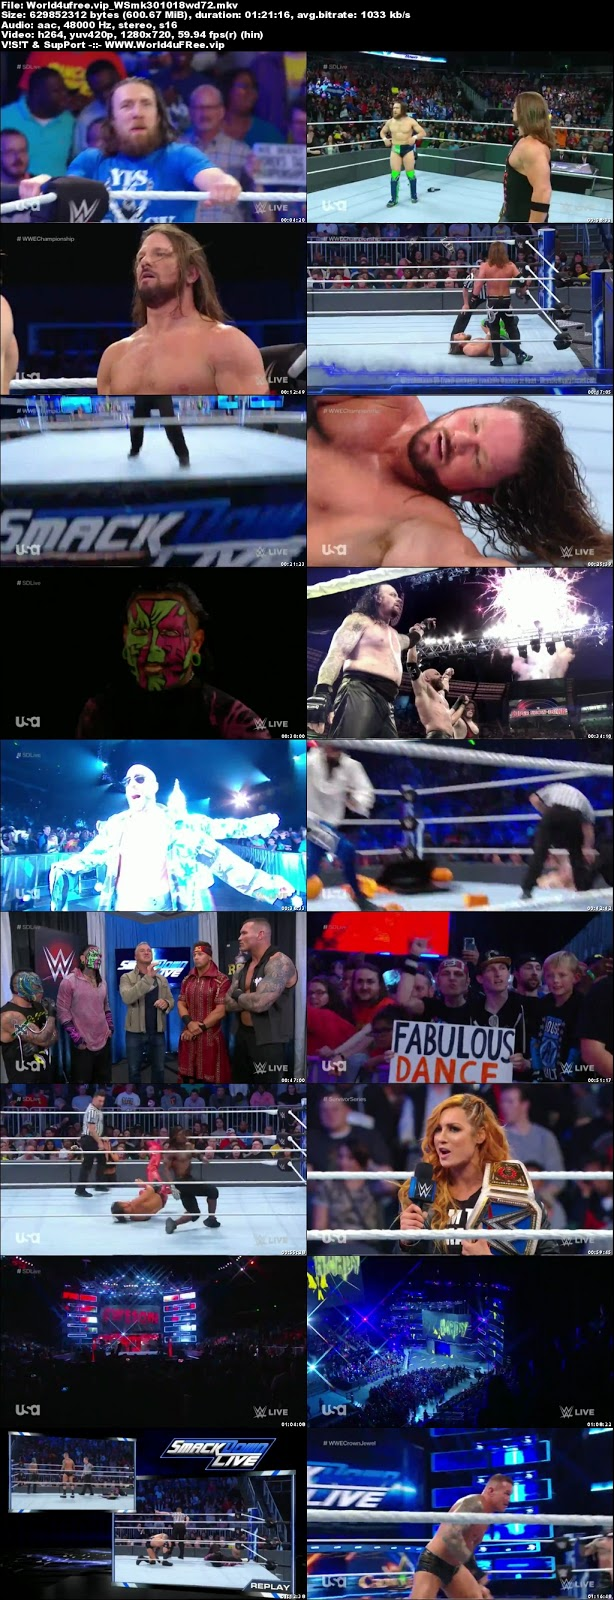 WWE Smackdown Live 30 OCTOBER 2018 720p HDTV 600MB x264 tv show wwe WWE Smackdown Live 23 OCTOBER 2018 HDTV 480p 650MB x264 compressed small size free download or watch online at world4ufree.vip